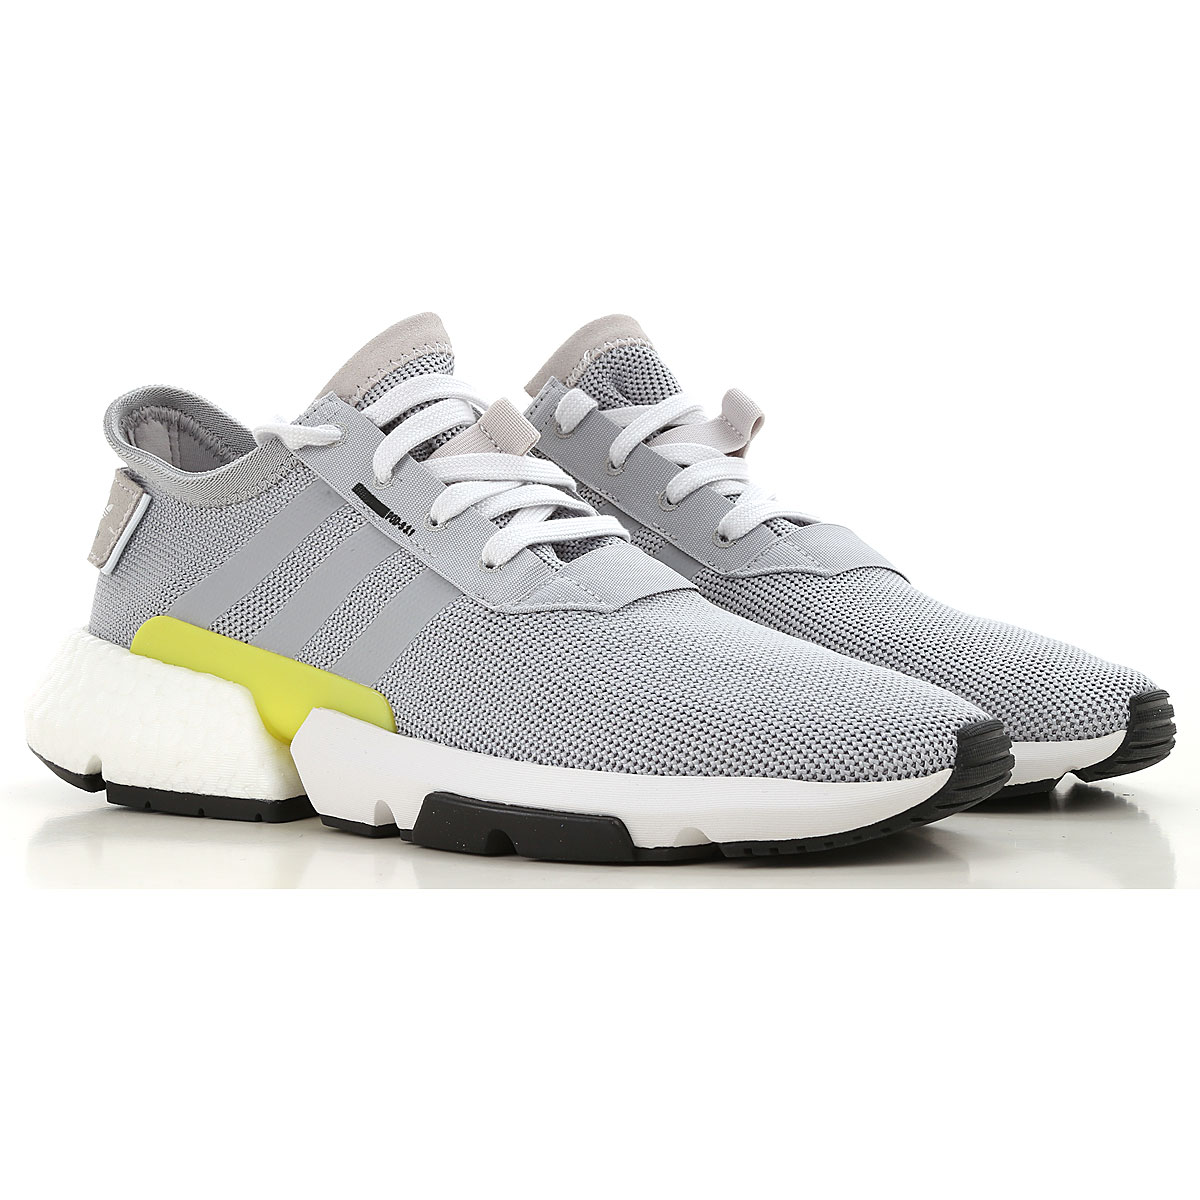 Image of Adidas Sneakers for Men, Light Grey, Canvas, 2017, US 7 - UK 6 - EUR 40 US 9.5 - UK 9 - EU 43